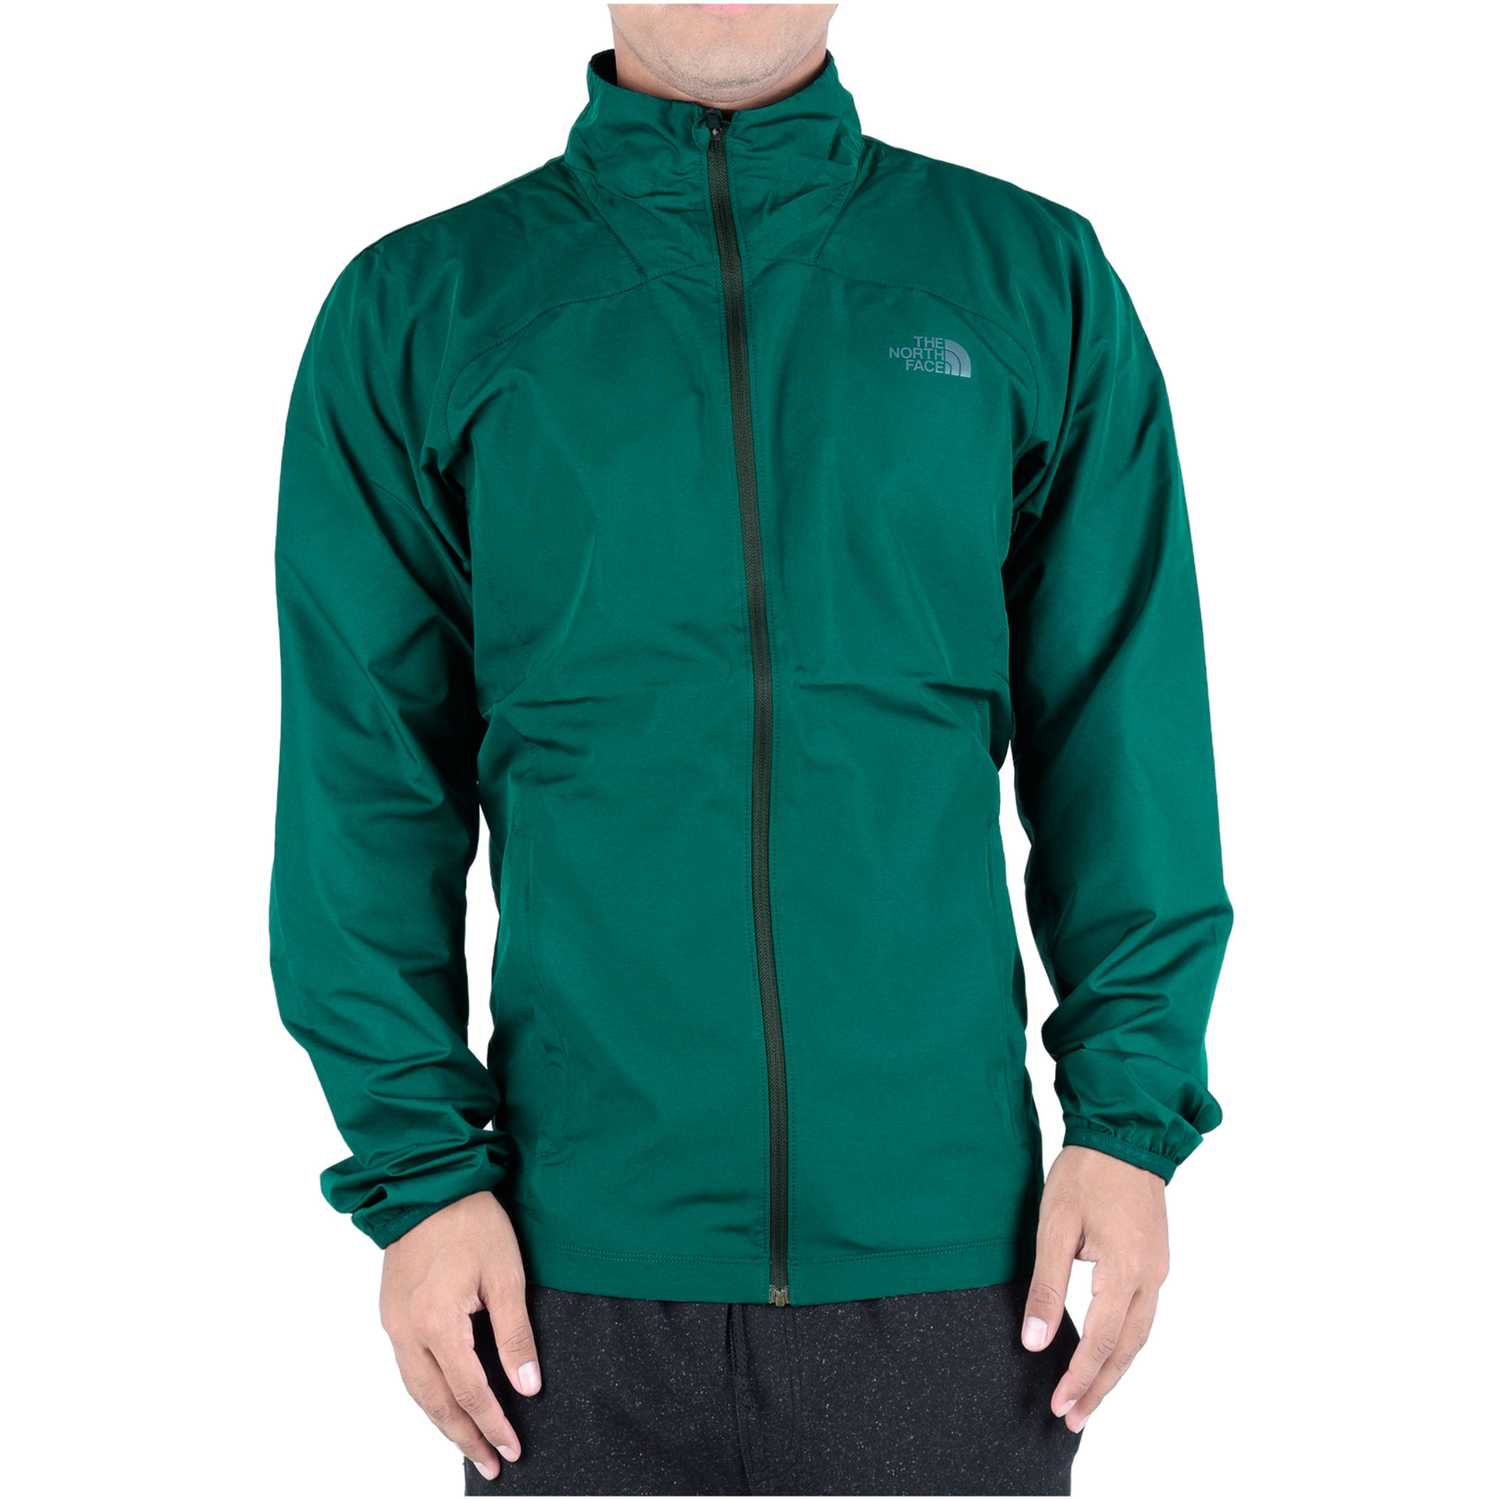 Casaca de Hombre The North Face Verde m ambition jacket